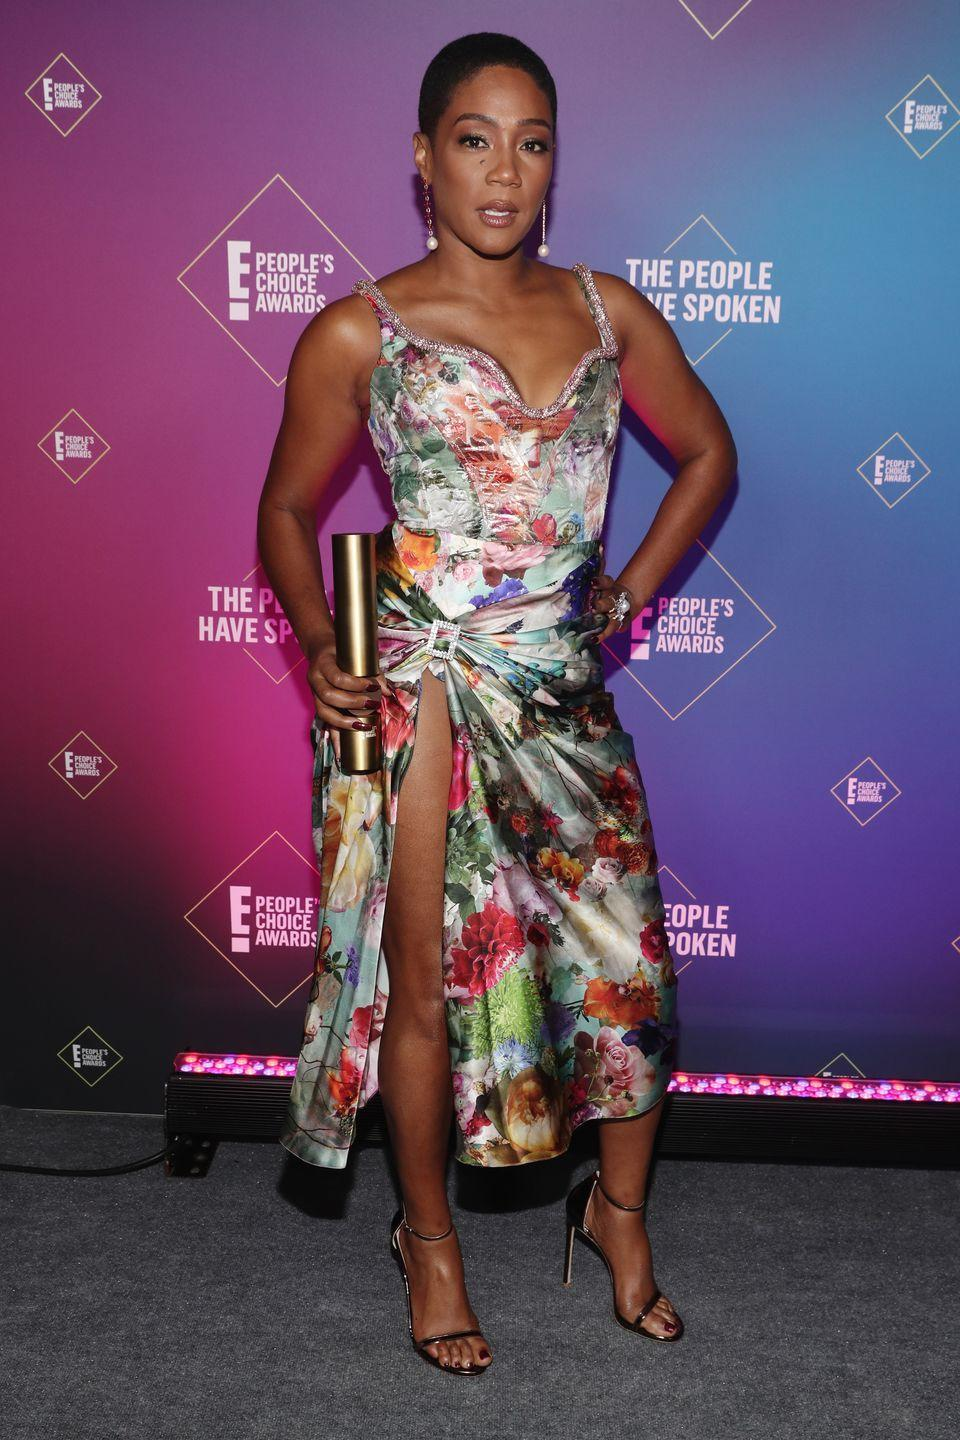 <p>It was all about floral drama for Tiffany Haddish, who wore a plunging printed design by Prabal Gurung for the award ceremony, where she won the Movie Star of 2020 accolade.</p>